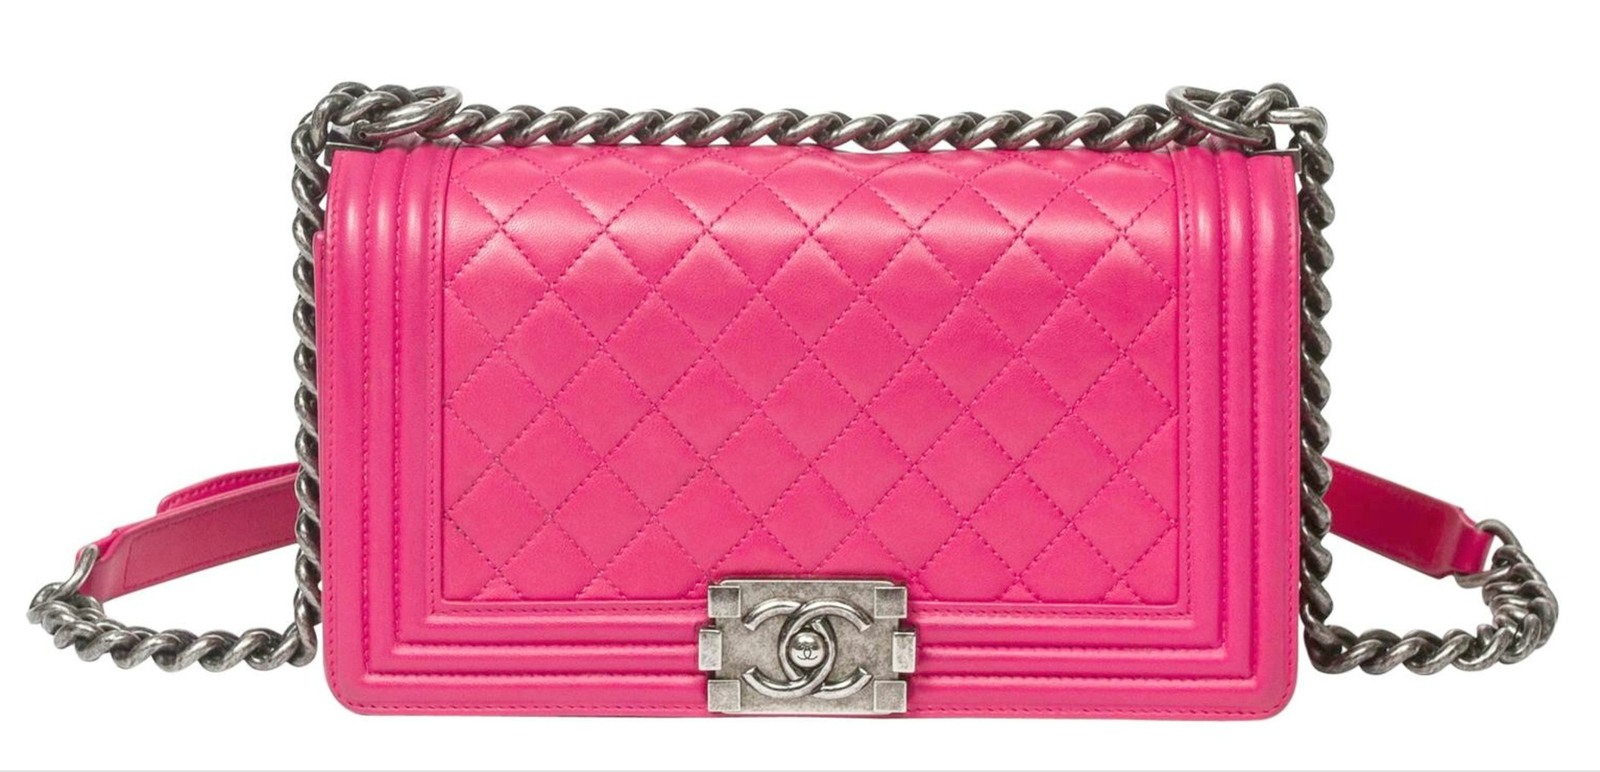 AUTHENTIC CHANEL HOT PINK QUILTED CALFSKIN Medium Boy Flap Bag